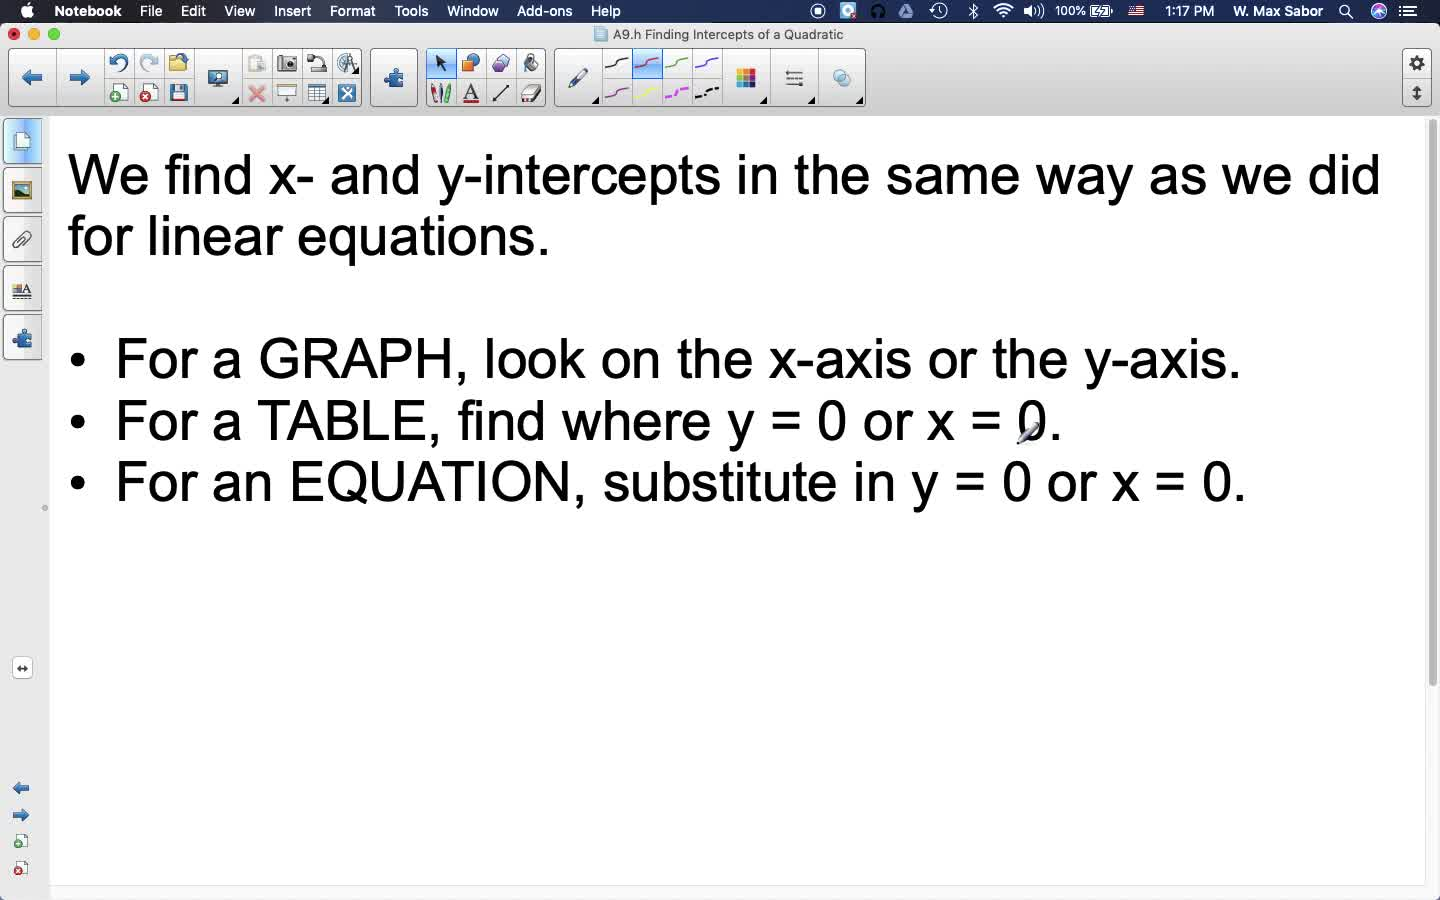 A9.h Finding Intercepts of a Quadratic